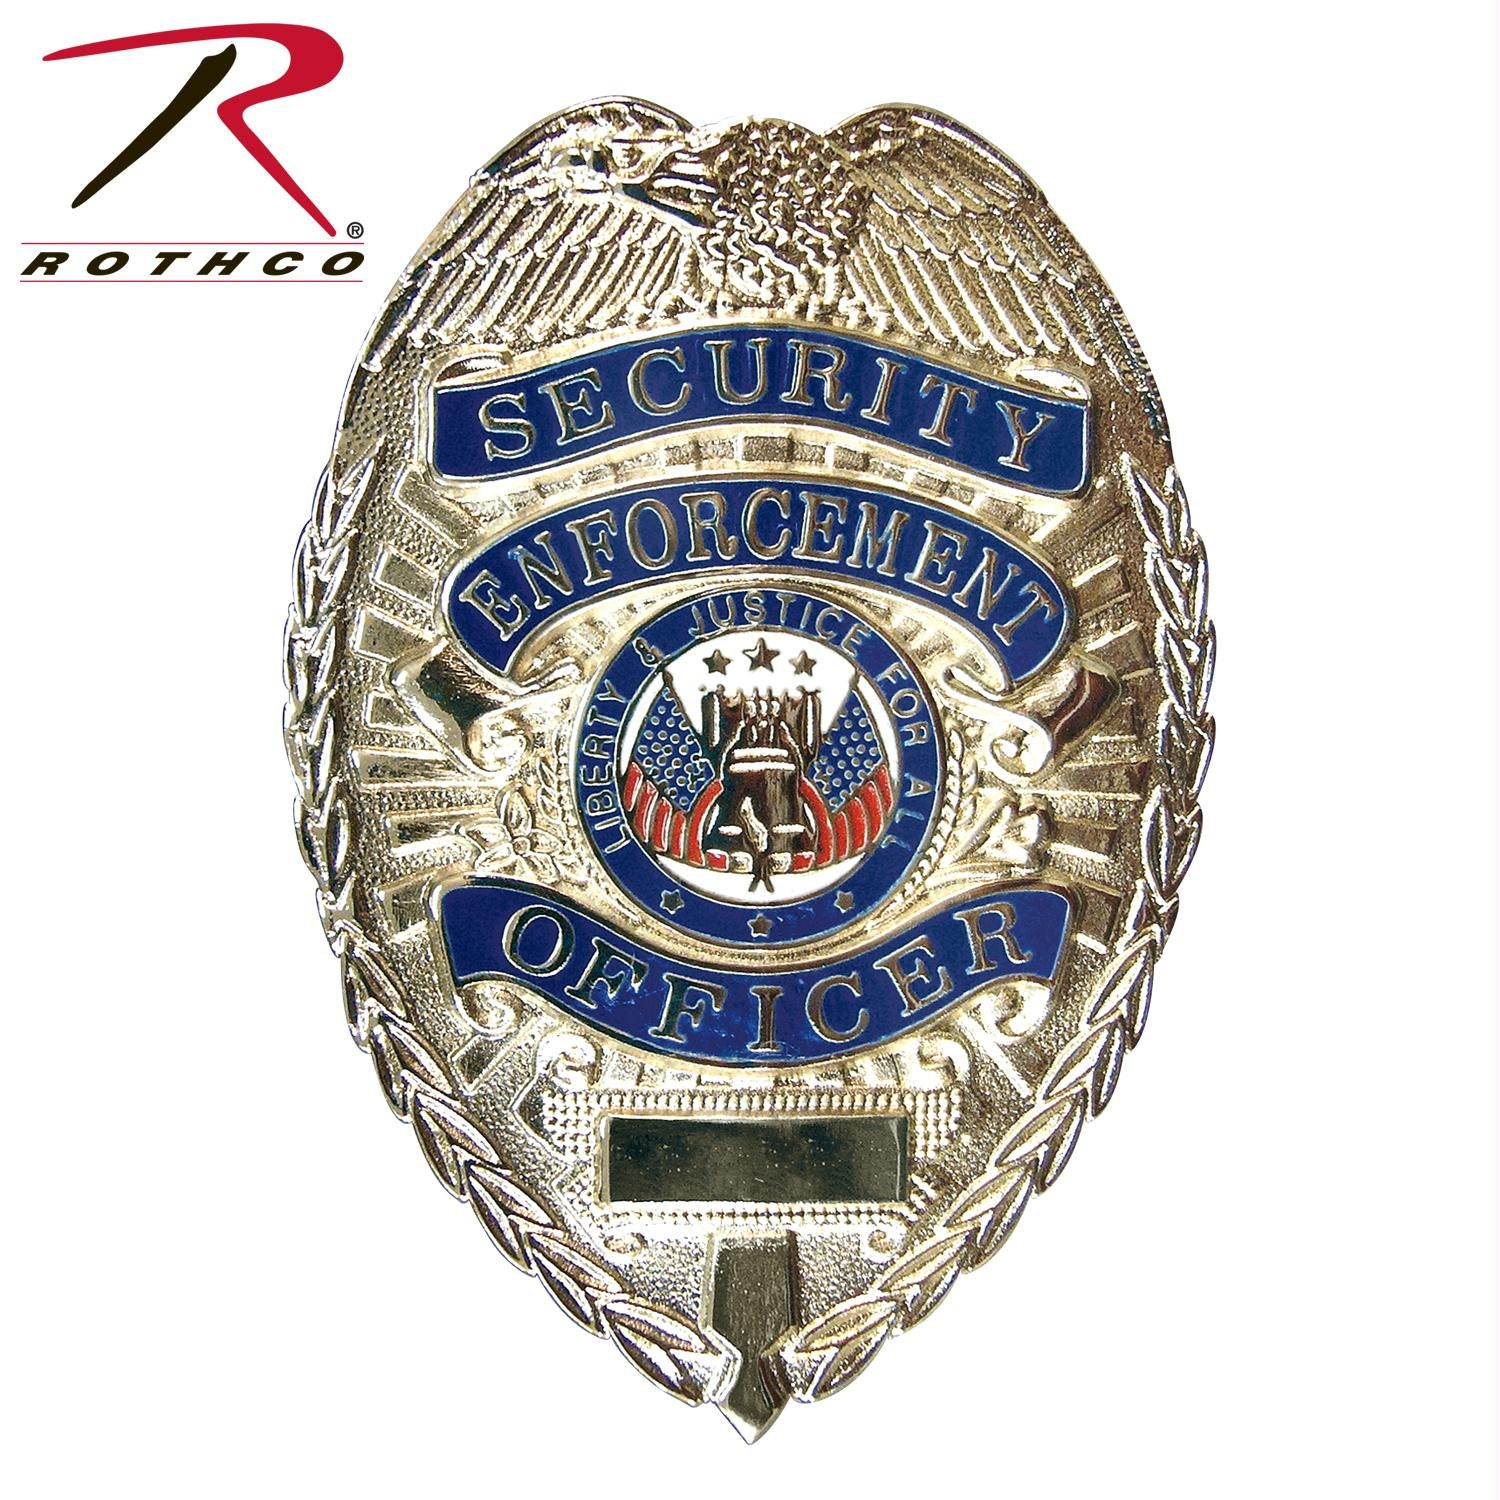 Rothco Deluxe Security Enforcement Officer Badge - Silver